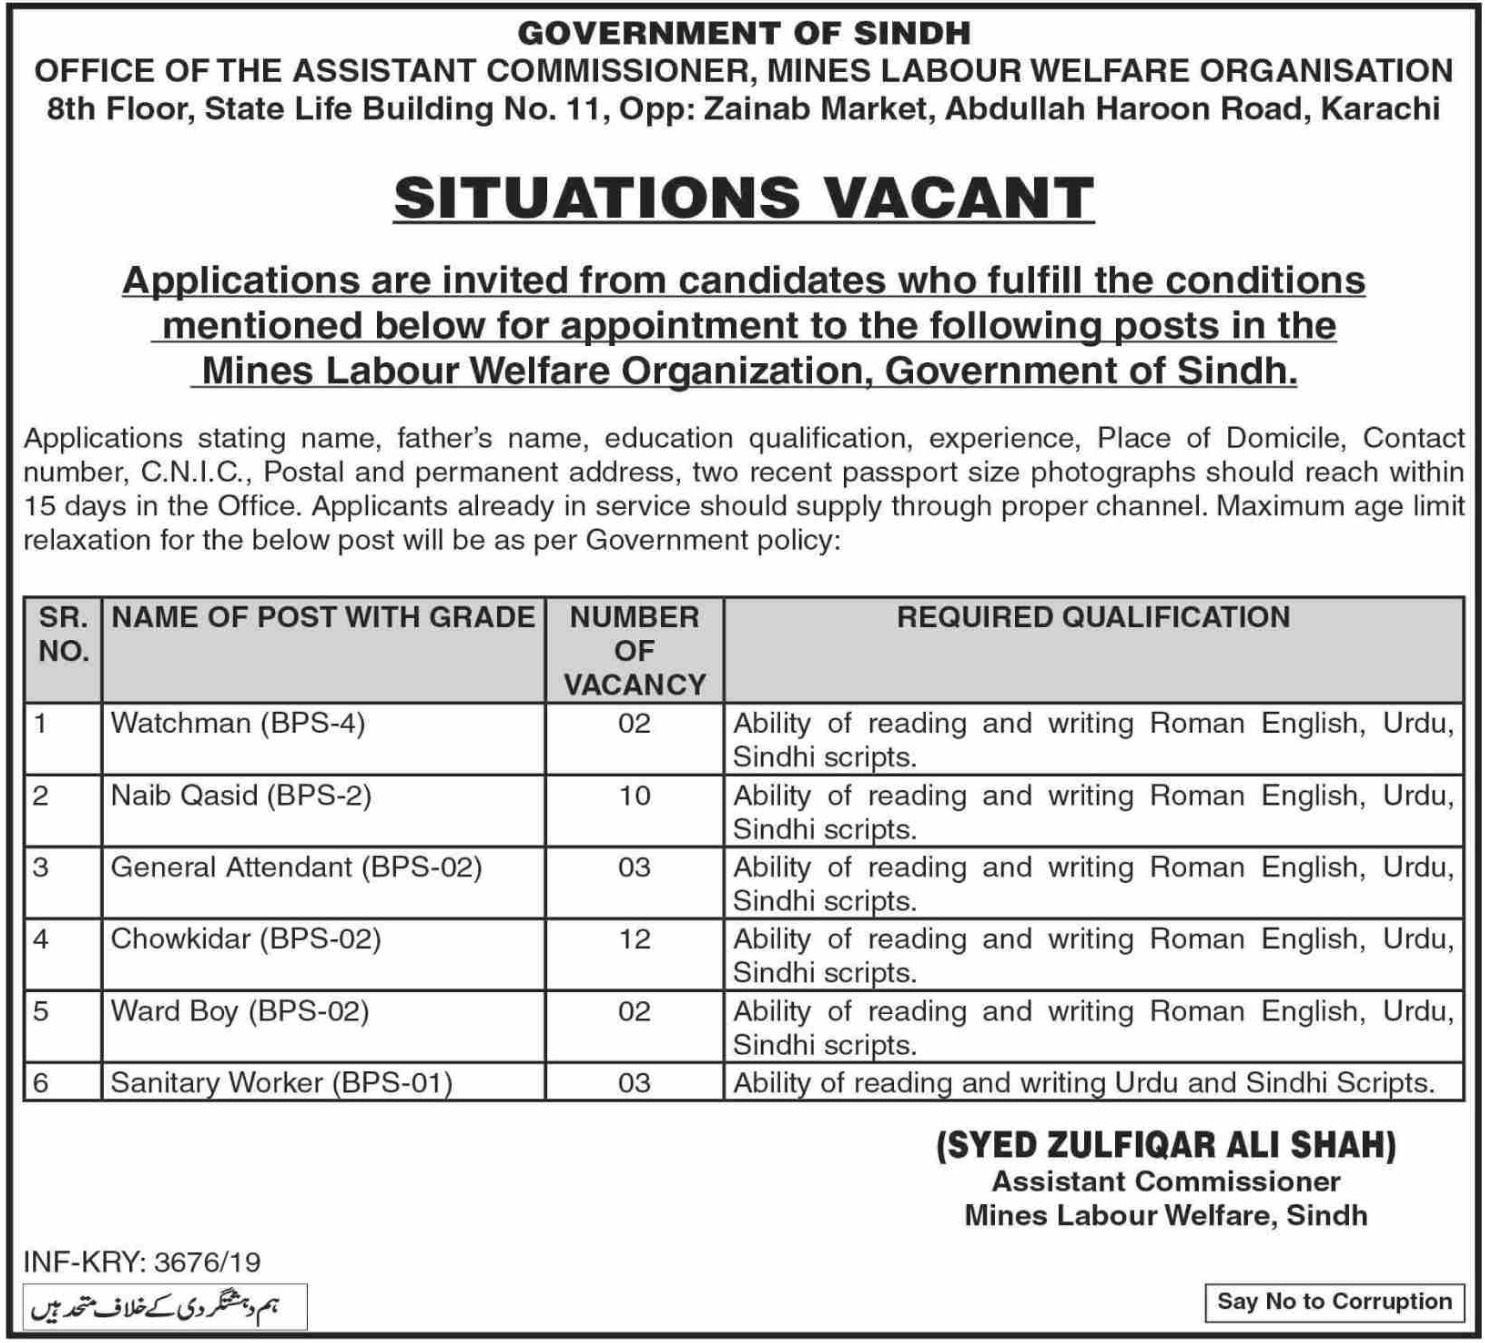 Mines Labour Welfare Organization Karachi Jobs 2019 Government of Sindh